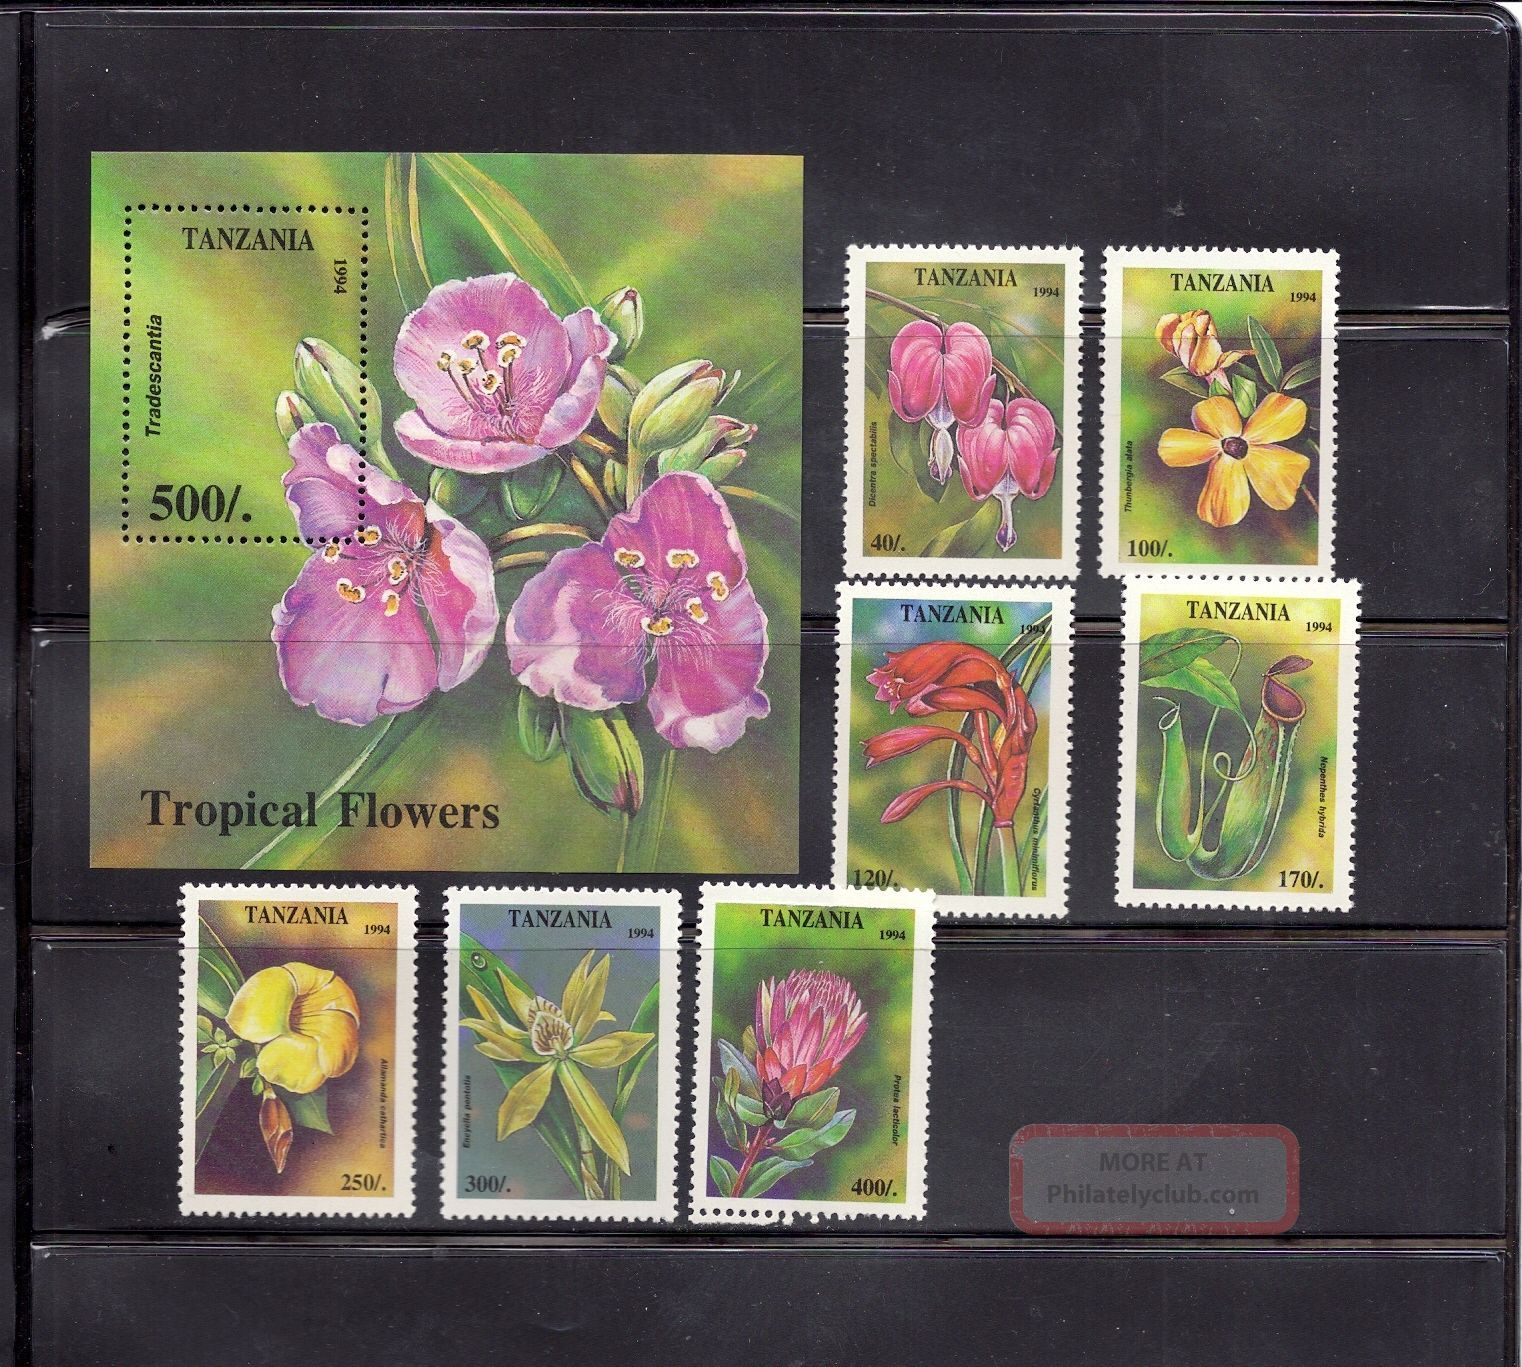 Tanzania 1995 Tropical Flowers Scott 1303 - 10 Topical Stamps photo